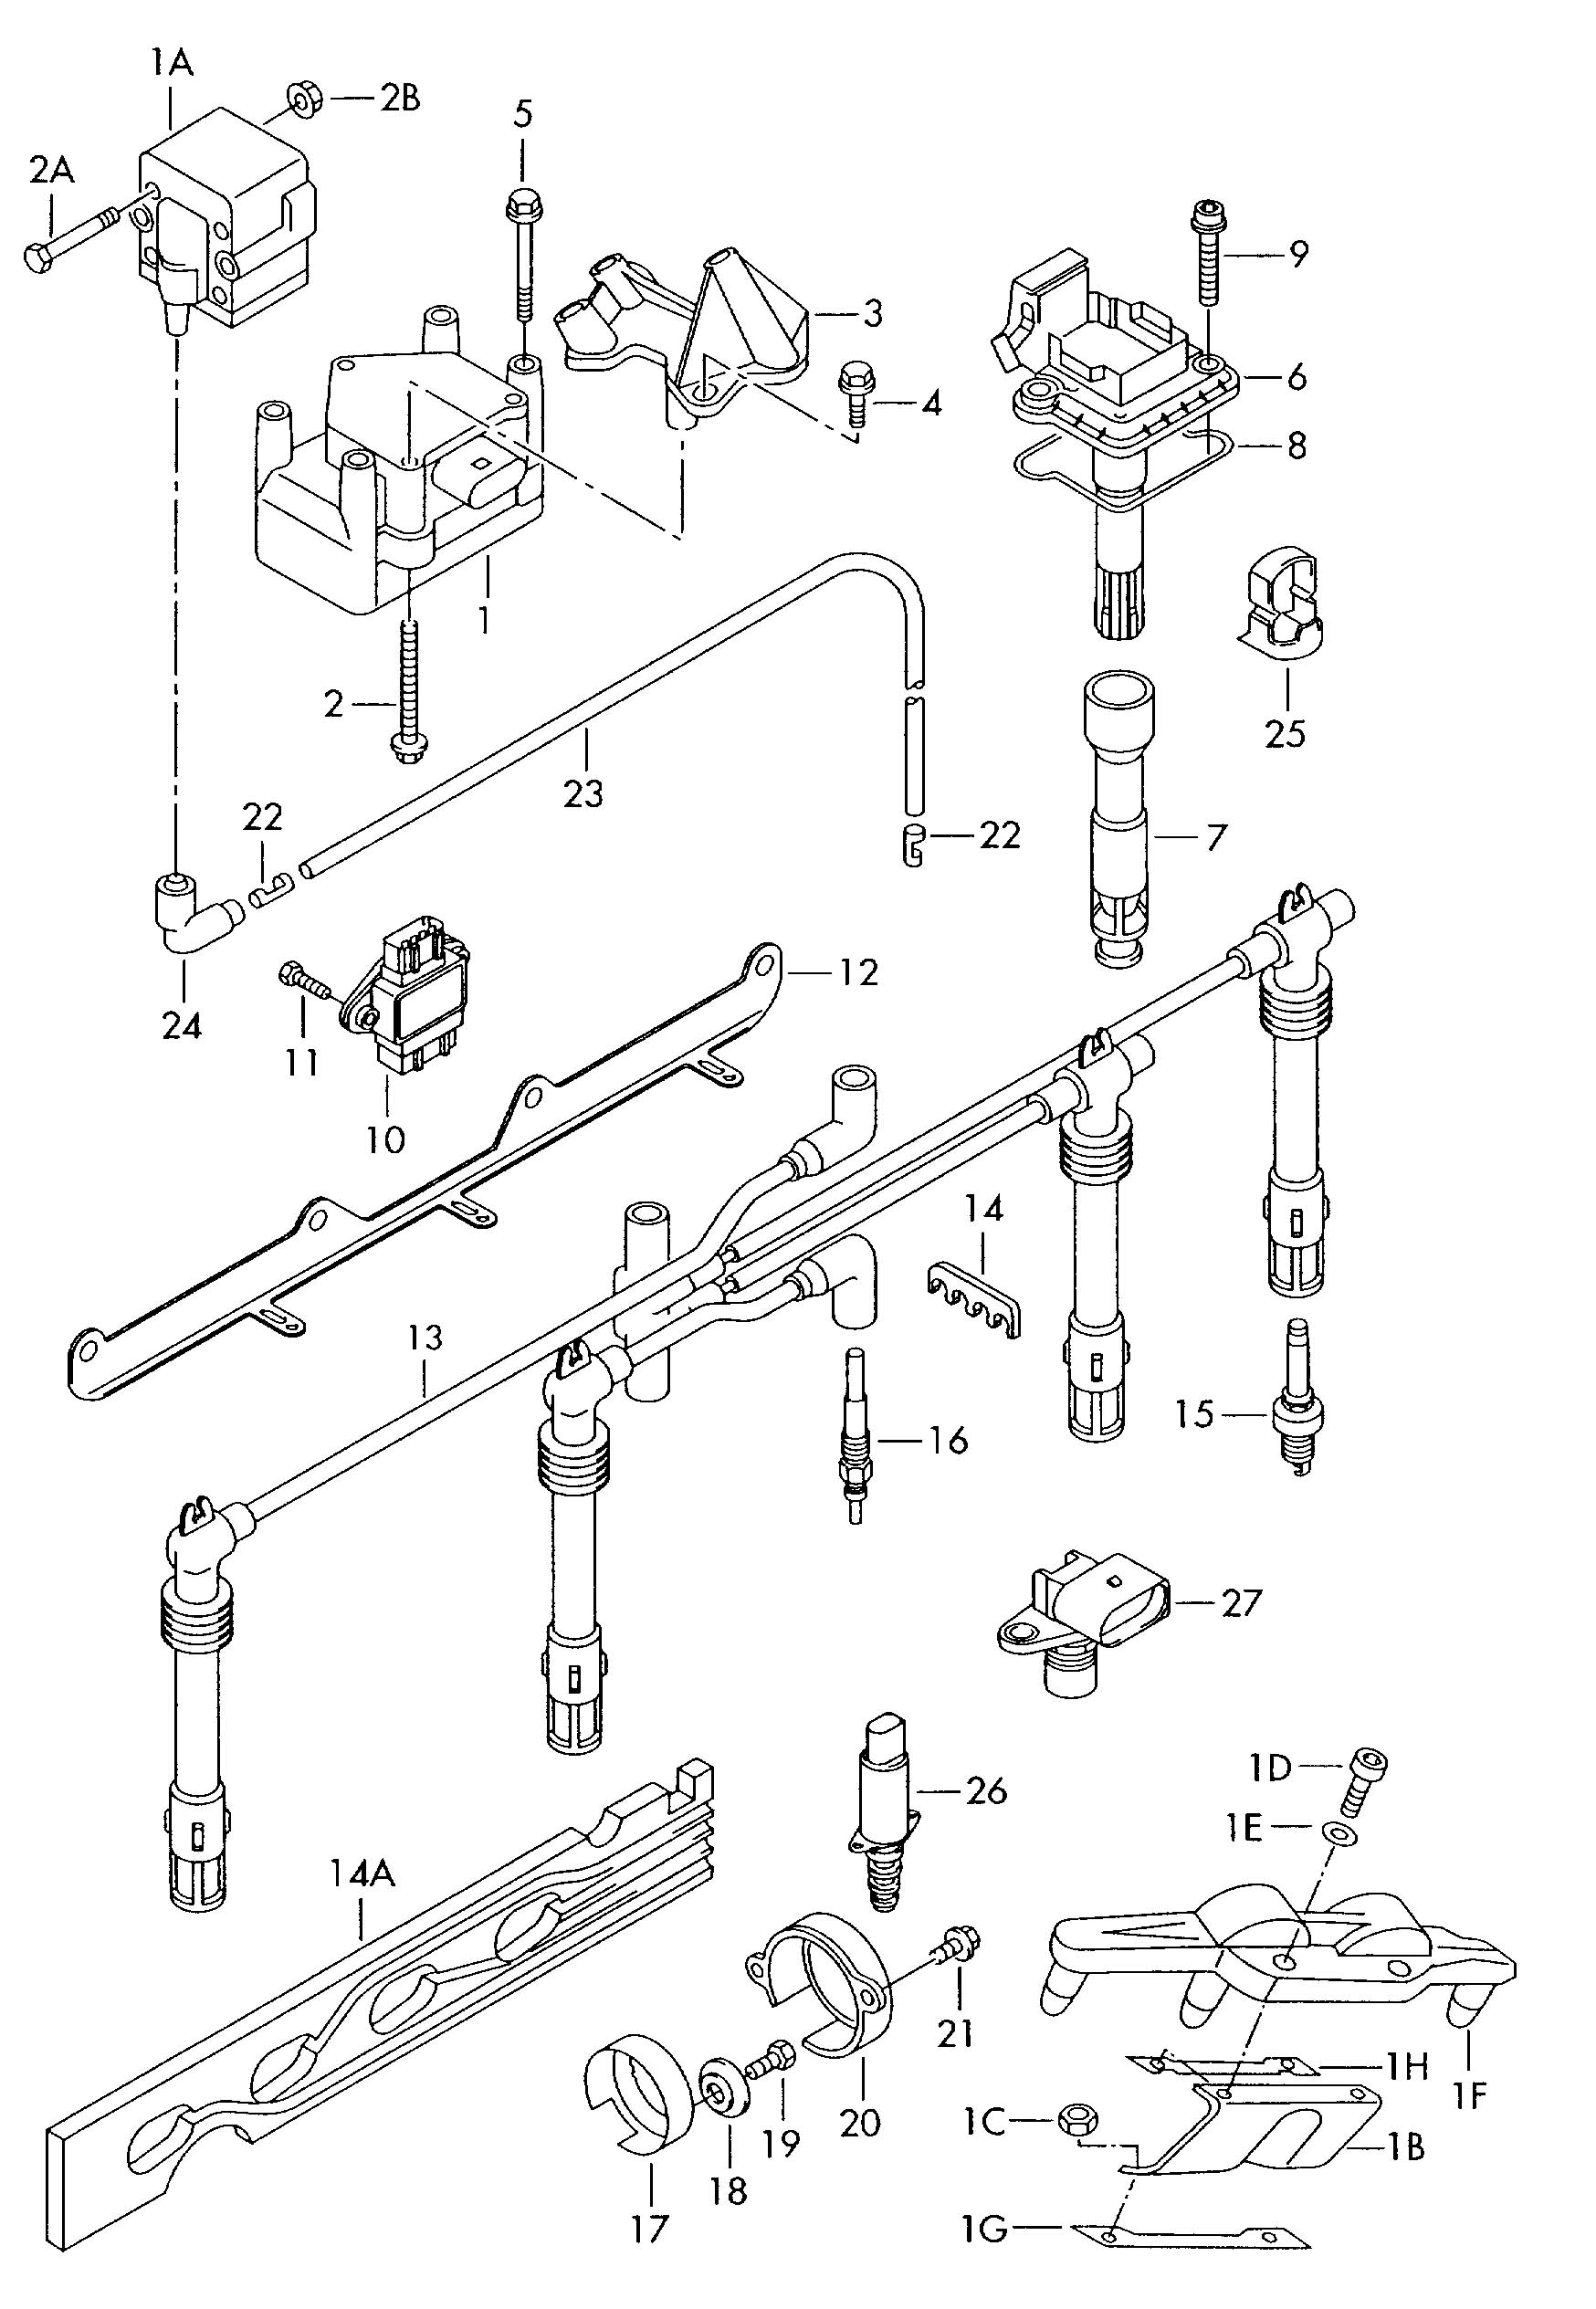 Honda Grom Msx 125 Service Manual Pdf also Dodge Sprinter Radio Wiring Diagram together with Wiring Diagram F Ford Ignition Module besides Search together with DiagramsMain. on wire connecting spark plug